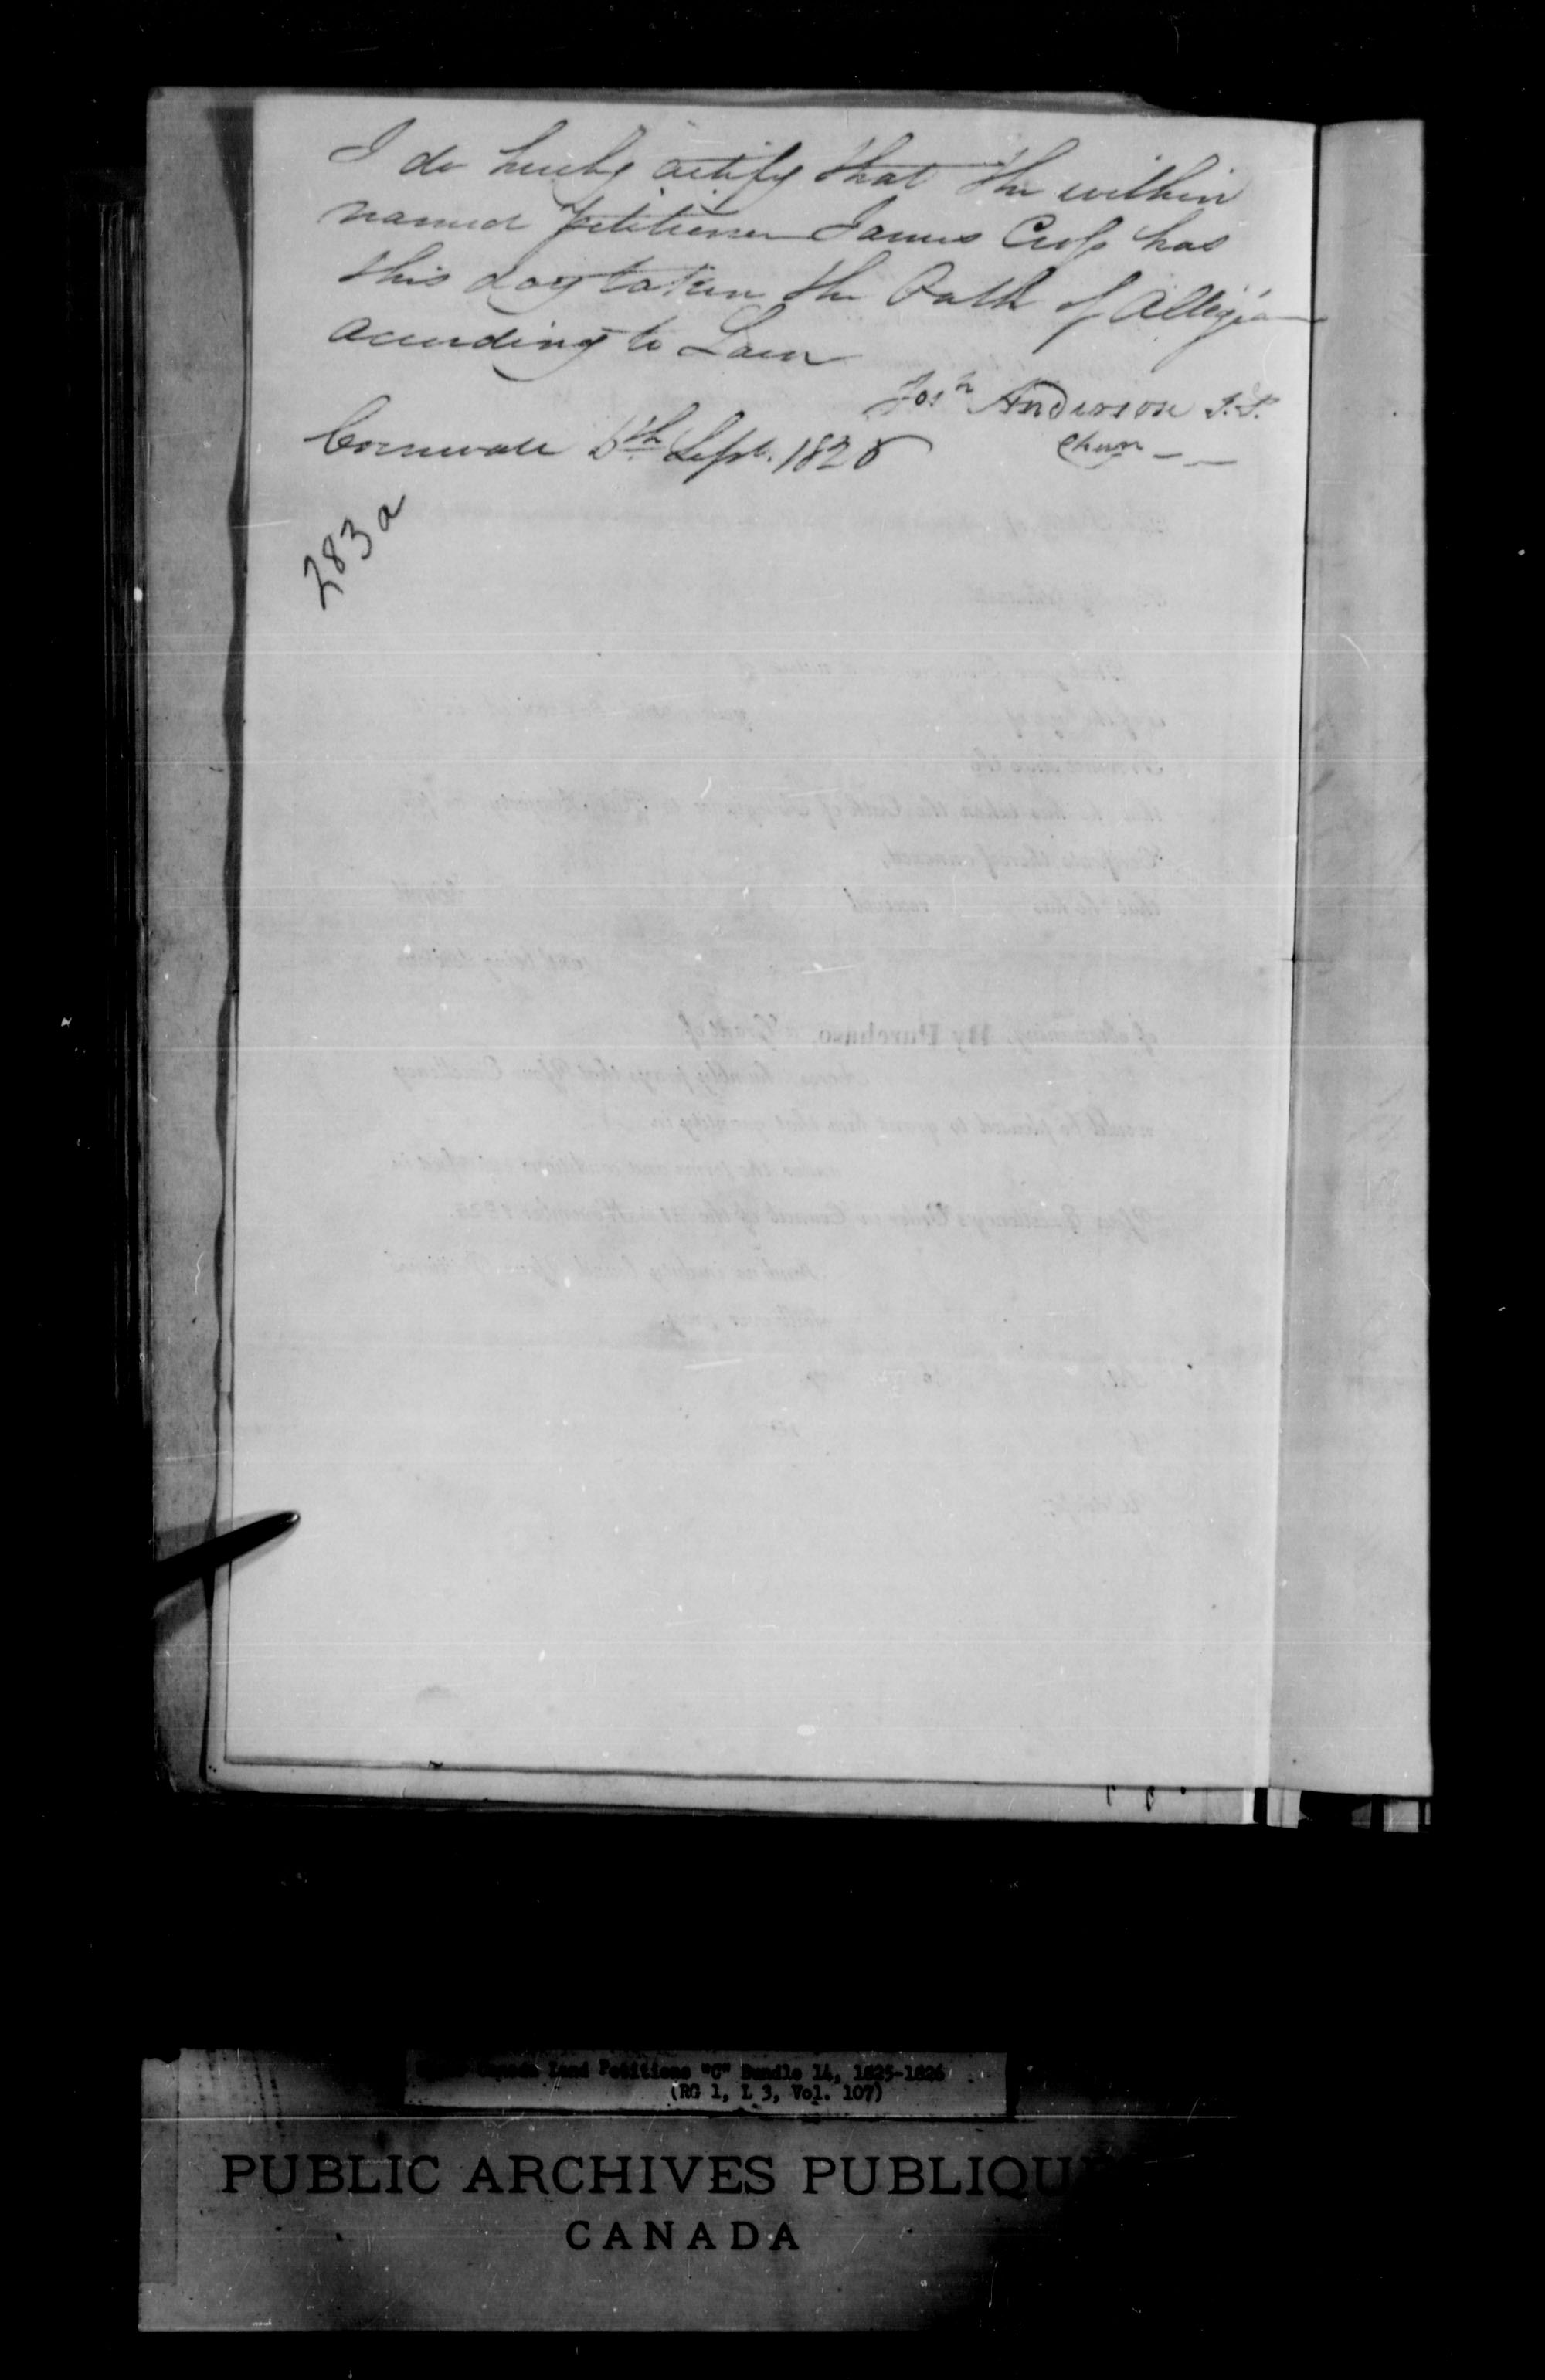 Title: Upper Canada Land Petitions (1763-1865) - Mikan Number: 205131 - Microform: c-1724